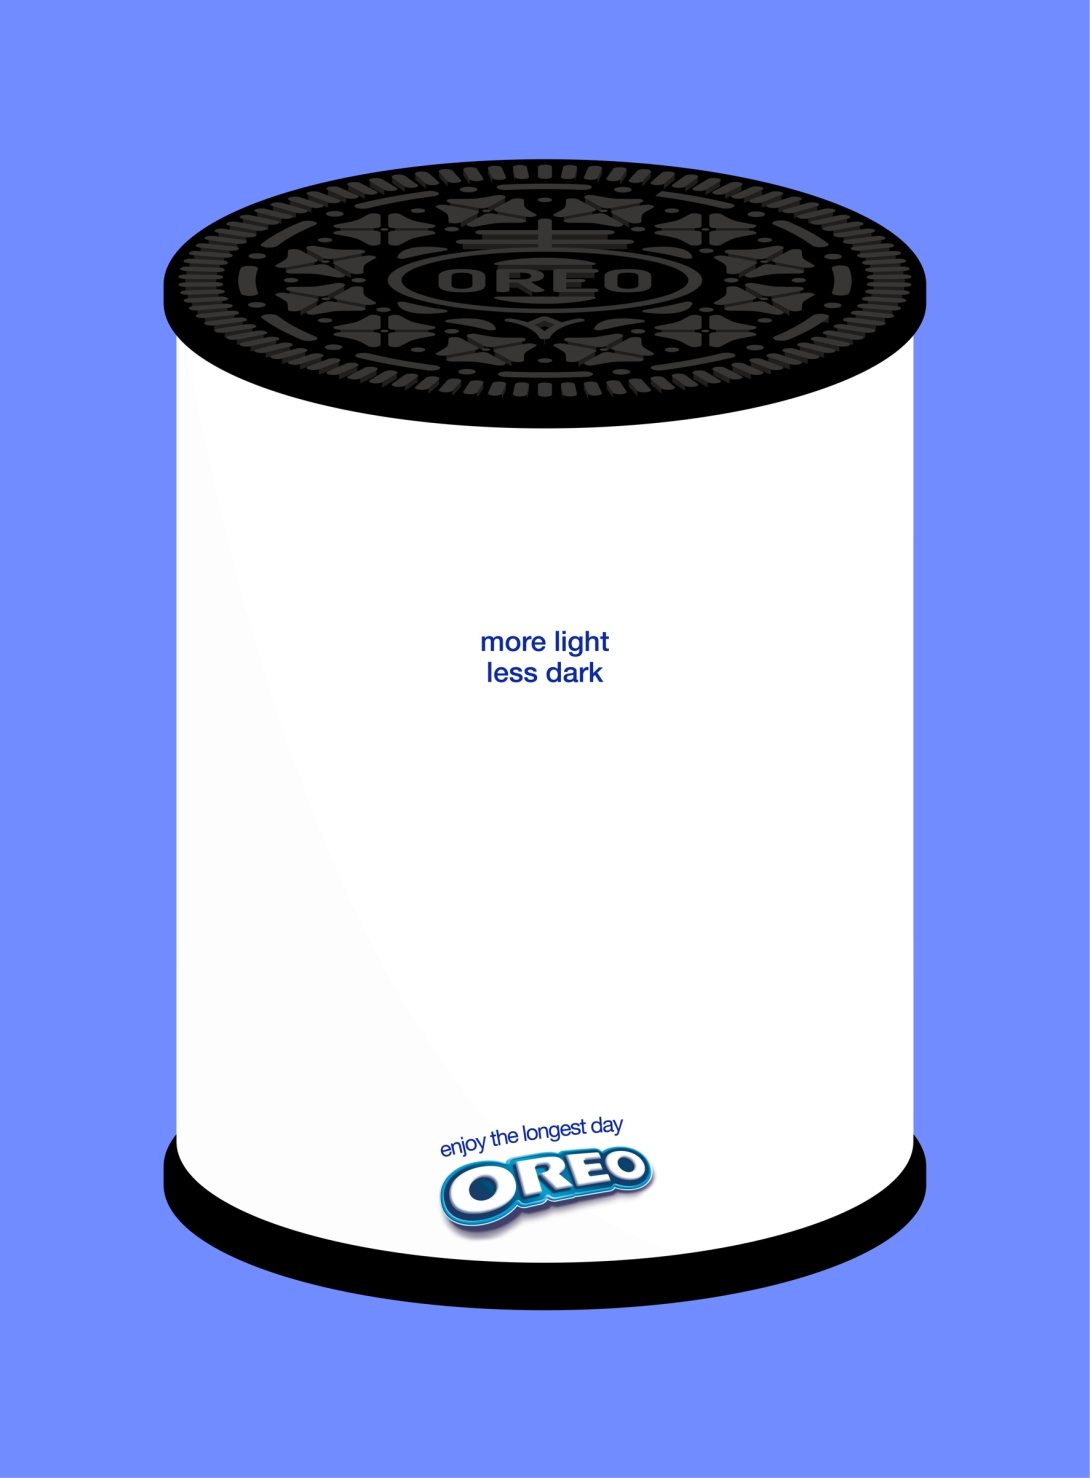 summer solstice advertising idea for oreo - more light and less dark